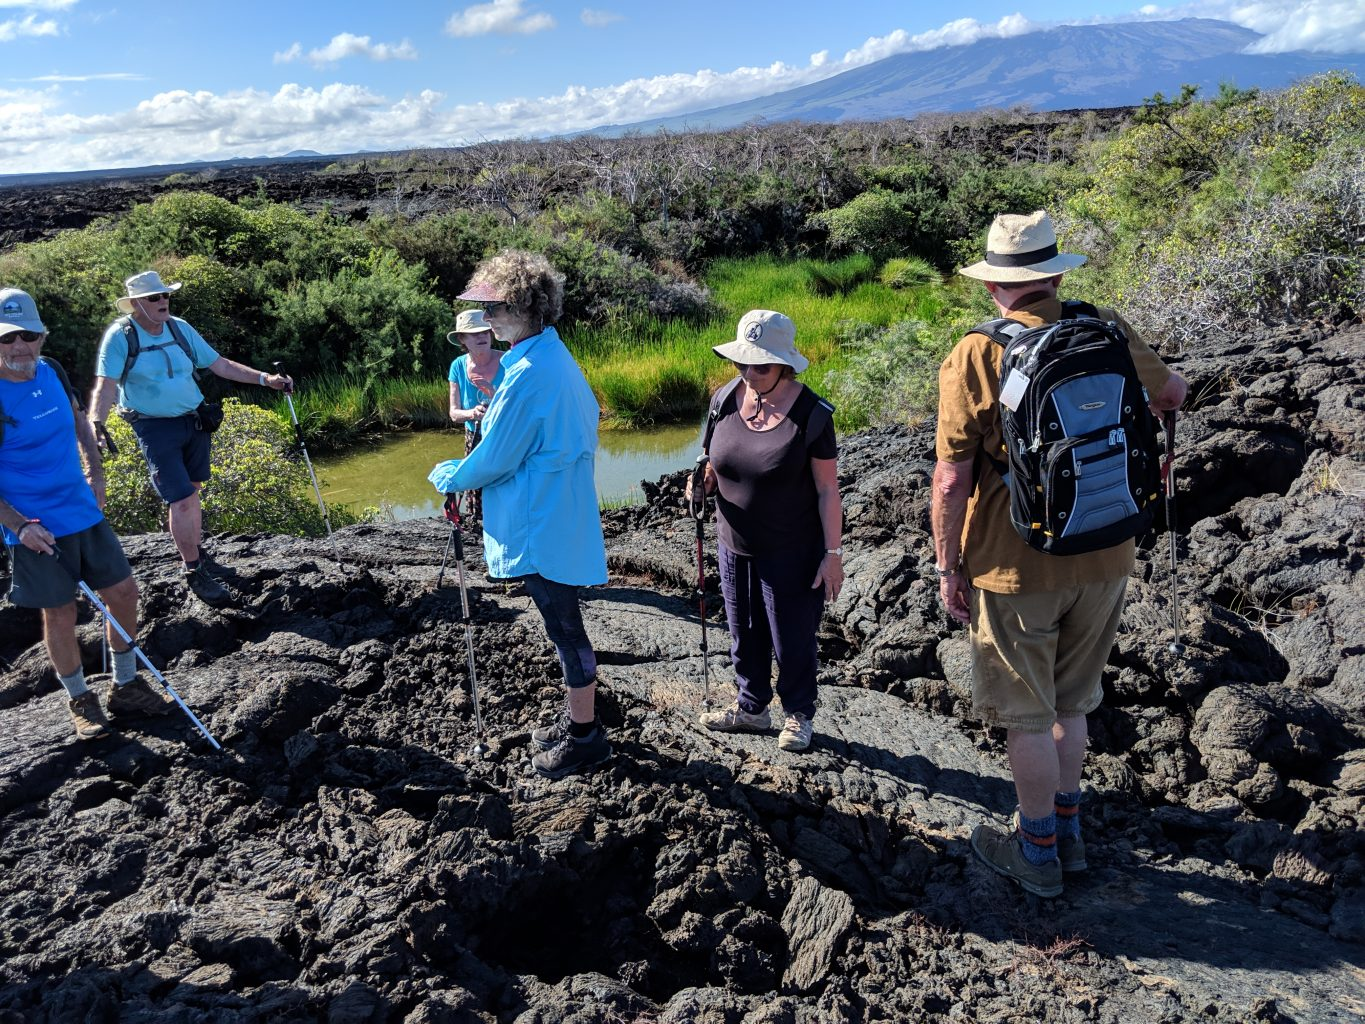 Hiking over the lava fields on Floreana in the Galapagos Islands.